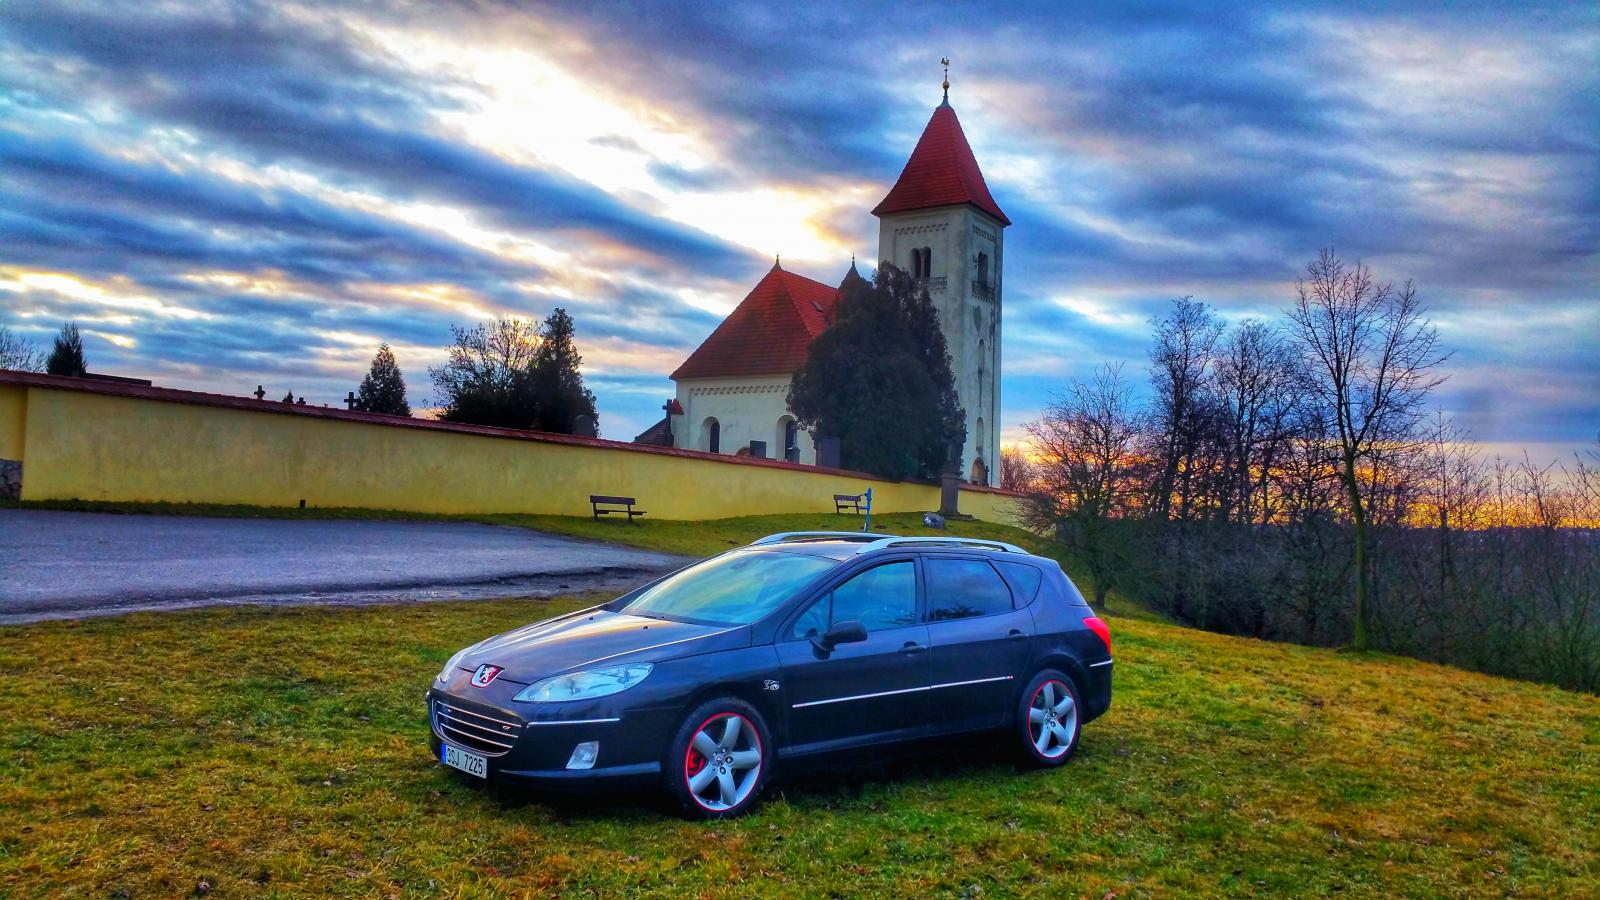 peugeot 407 owners club call for review  peugeot 5008  my